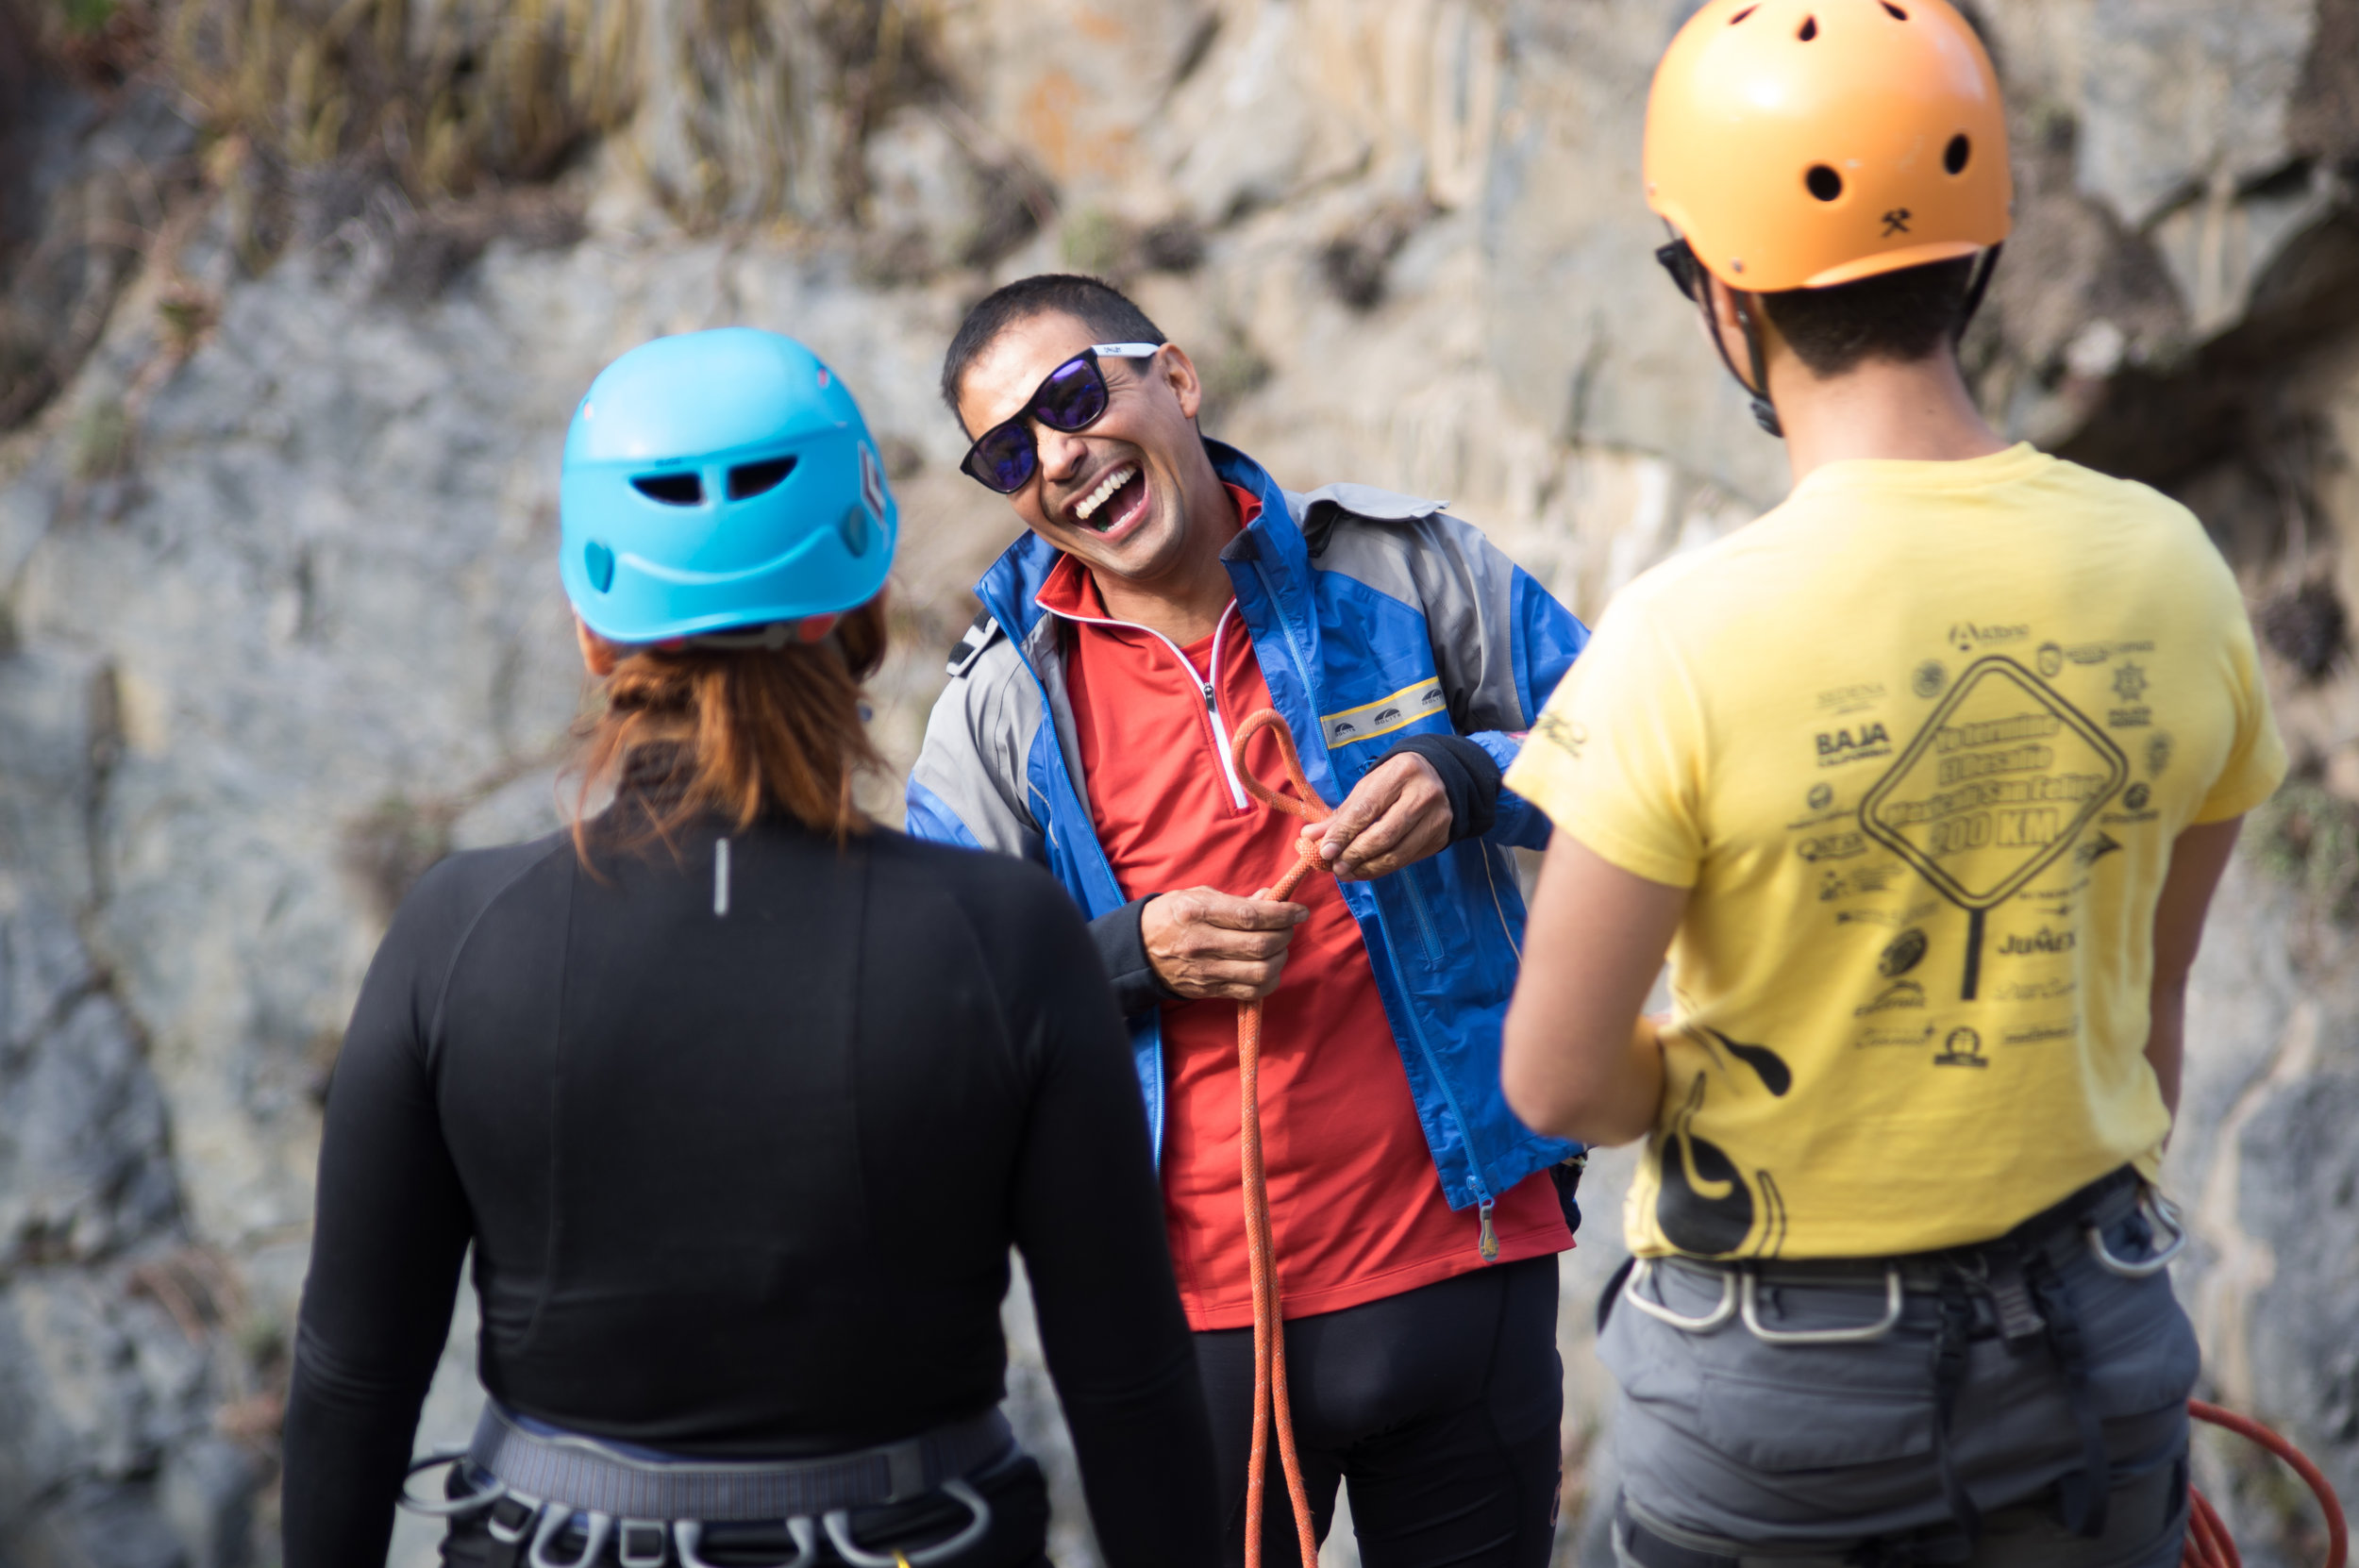 Archie [center] resembles every outdoor magazine poster child ever. Tanned and wiry from years outdoors, he sports an ocean blue windbreaker, Patagonia pants, and a blinding smile.